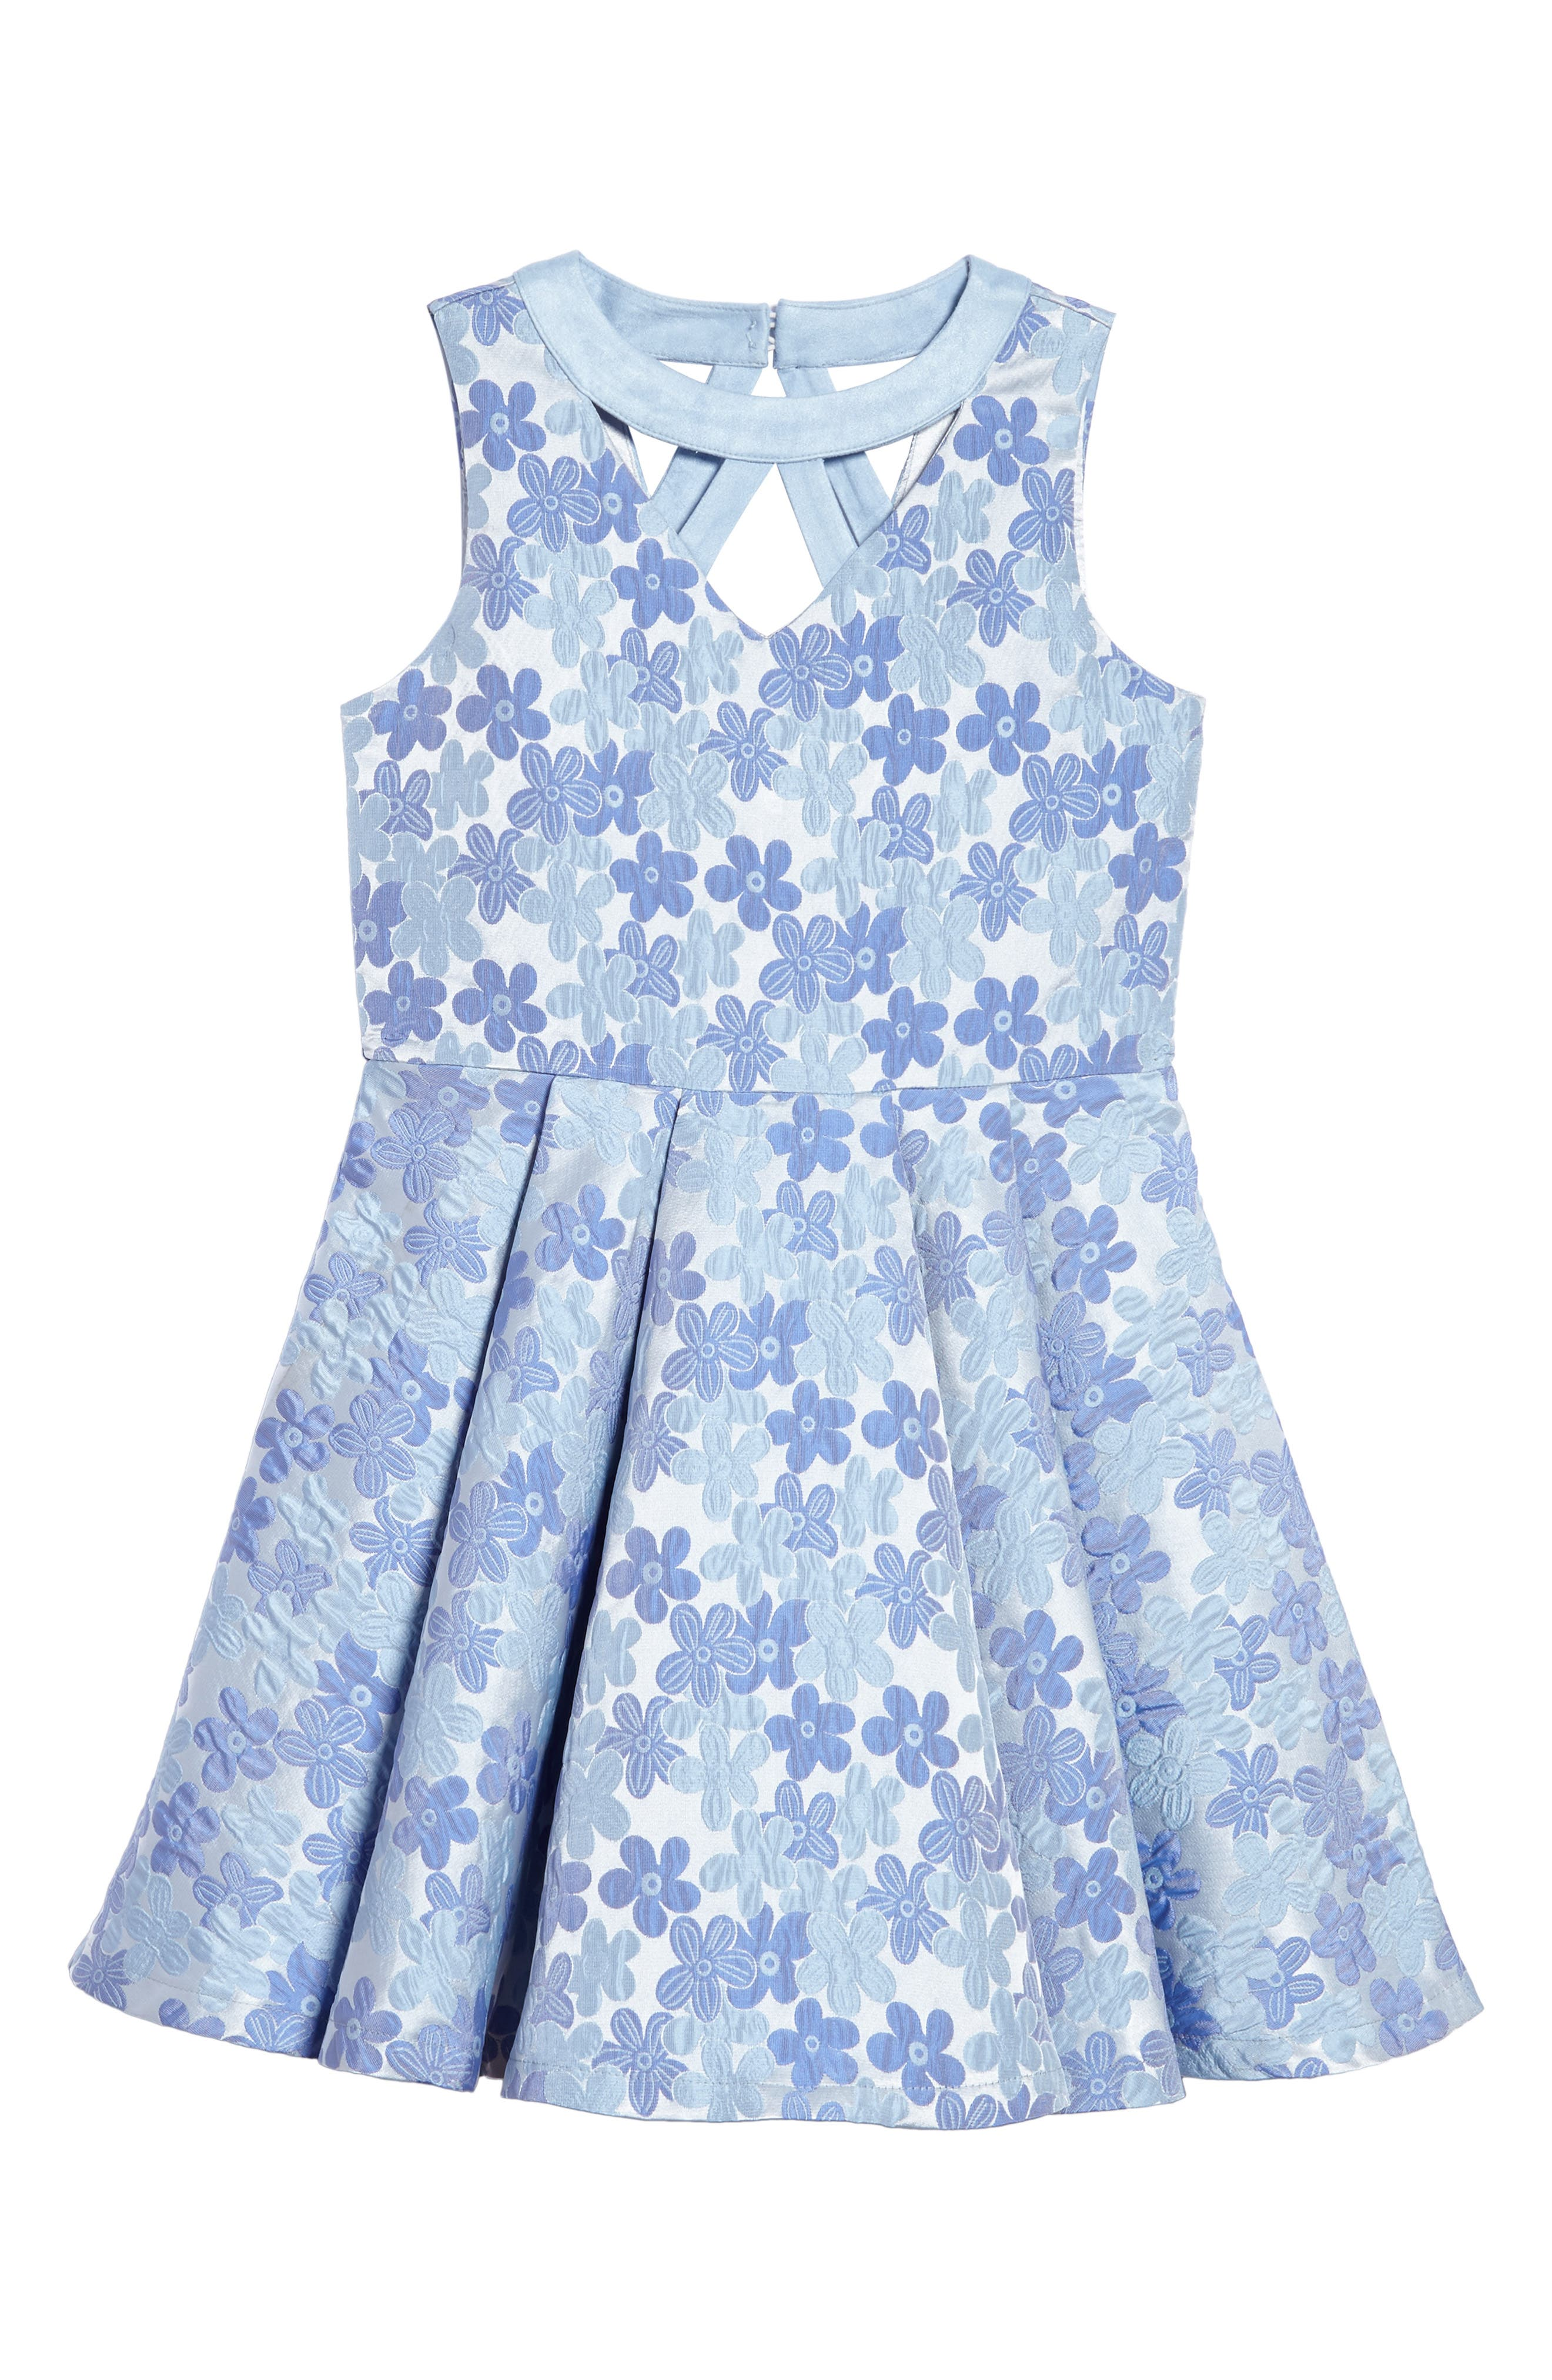 Daisy Brocade Fit & Flare Dress,                             Main thumbnail 1, color,                             Periwinkle